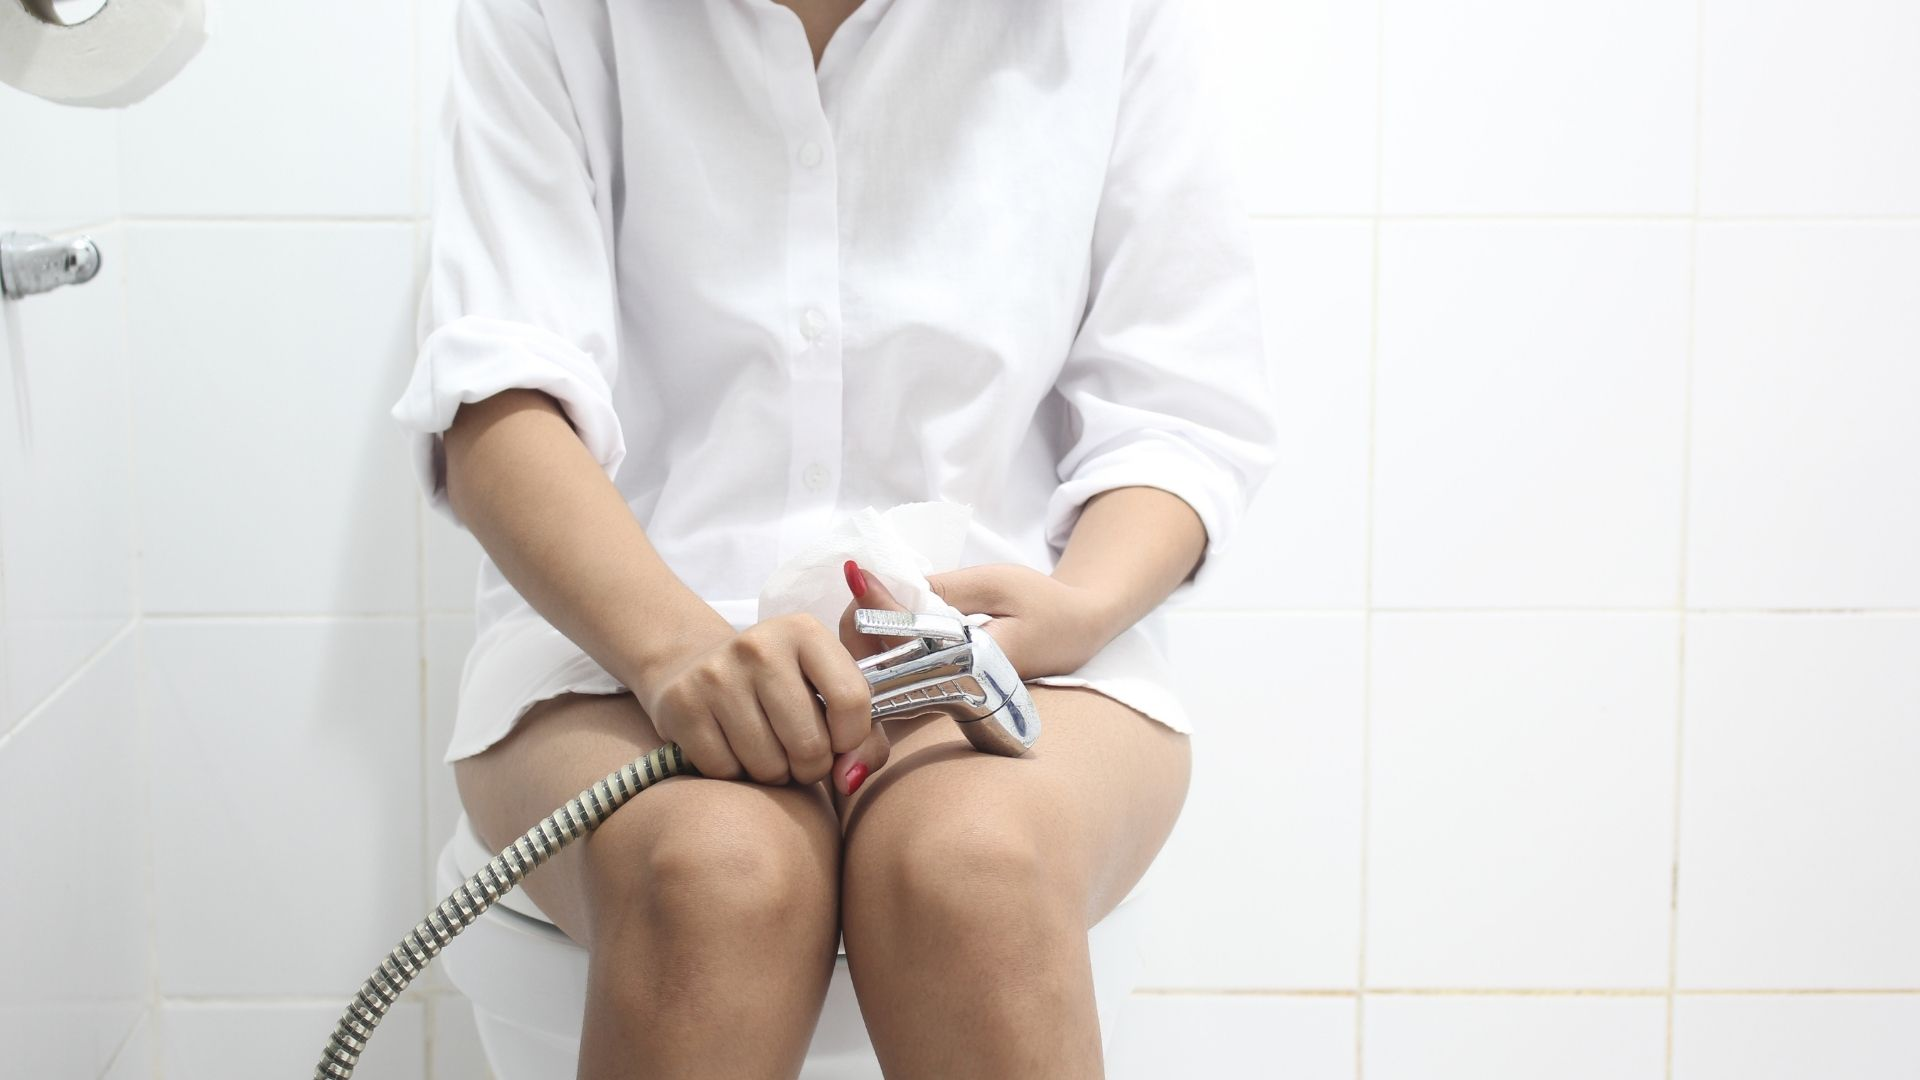 toilet bidet - Frequent urge to pee/ urinate and urinary incontinence in women